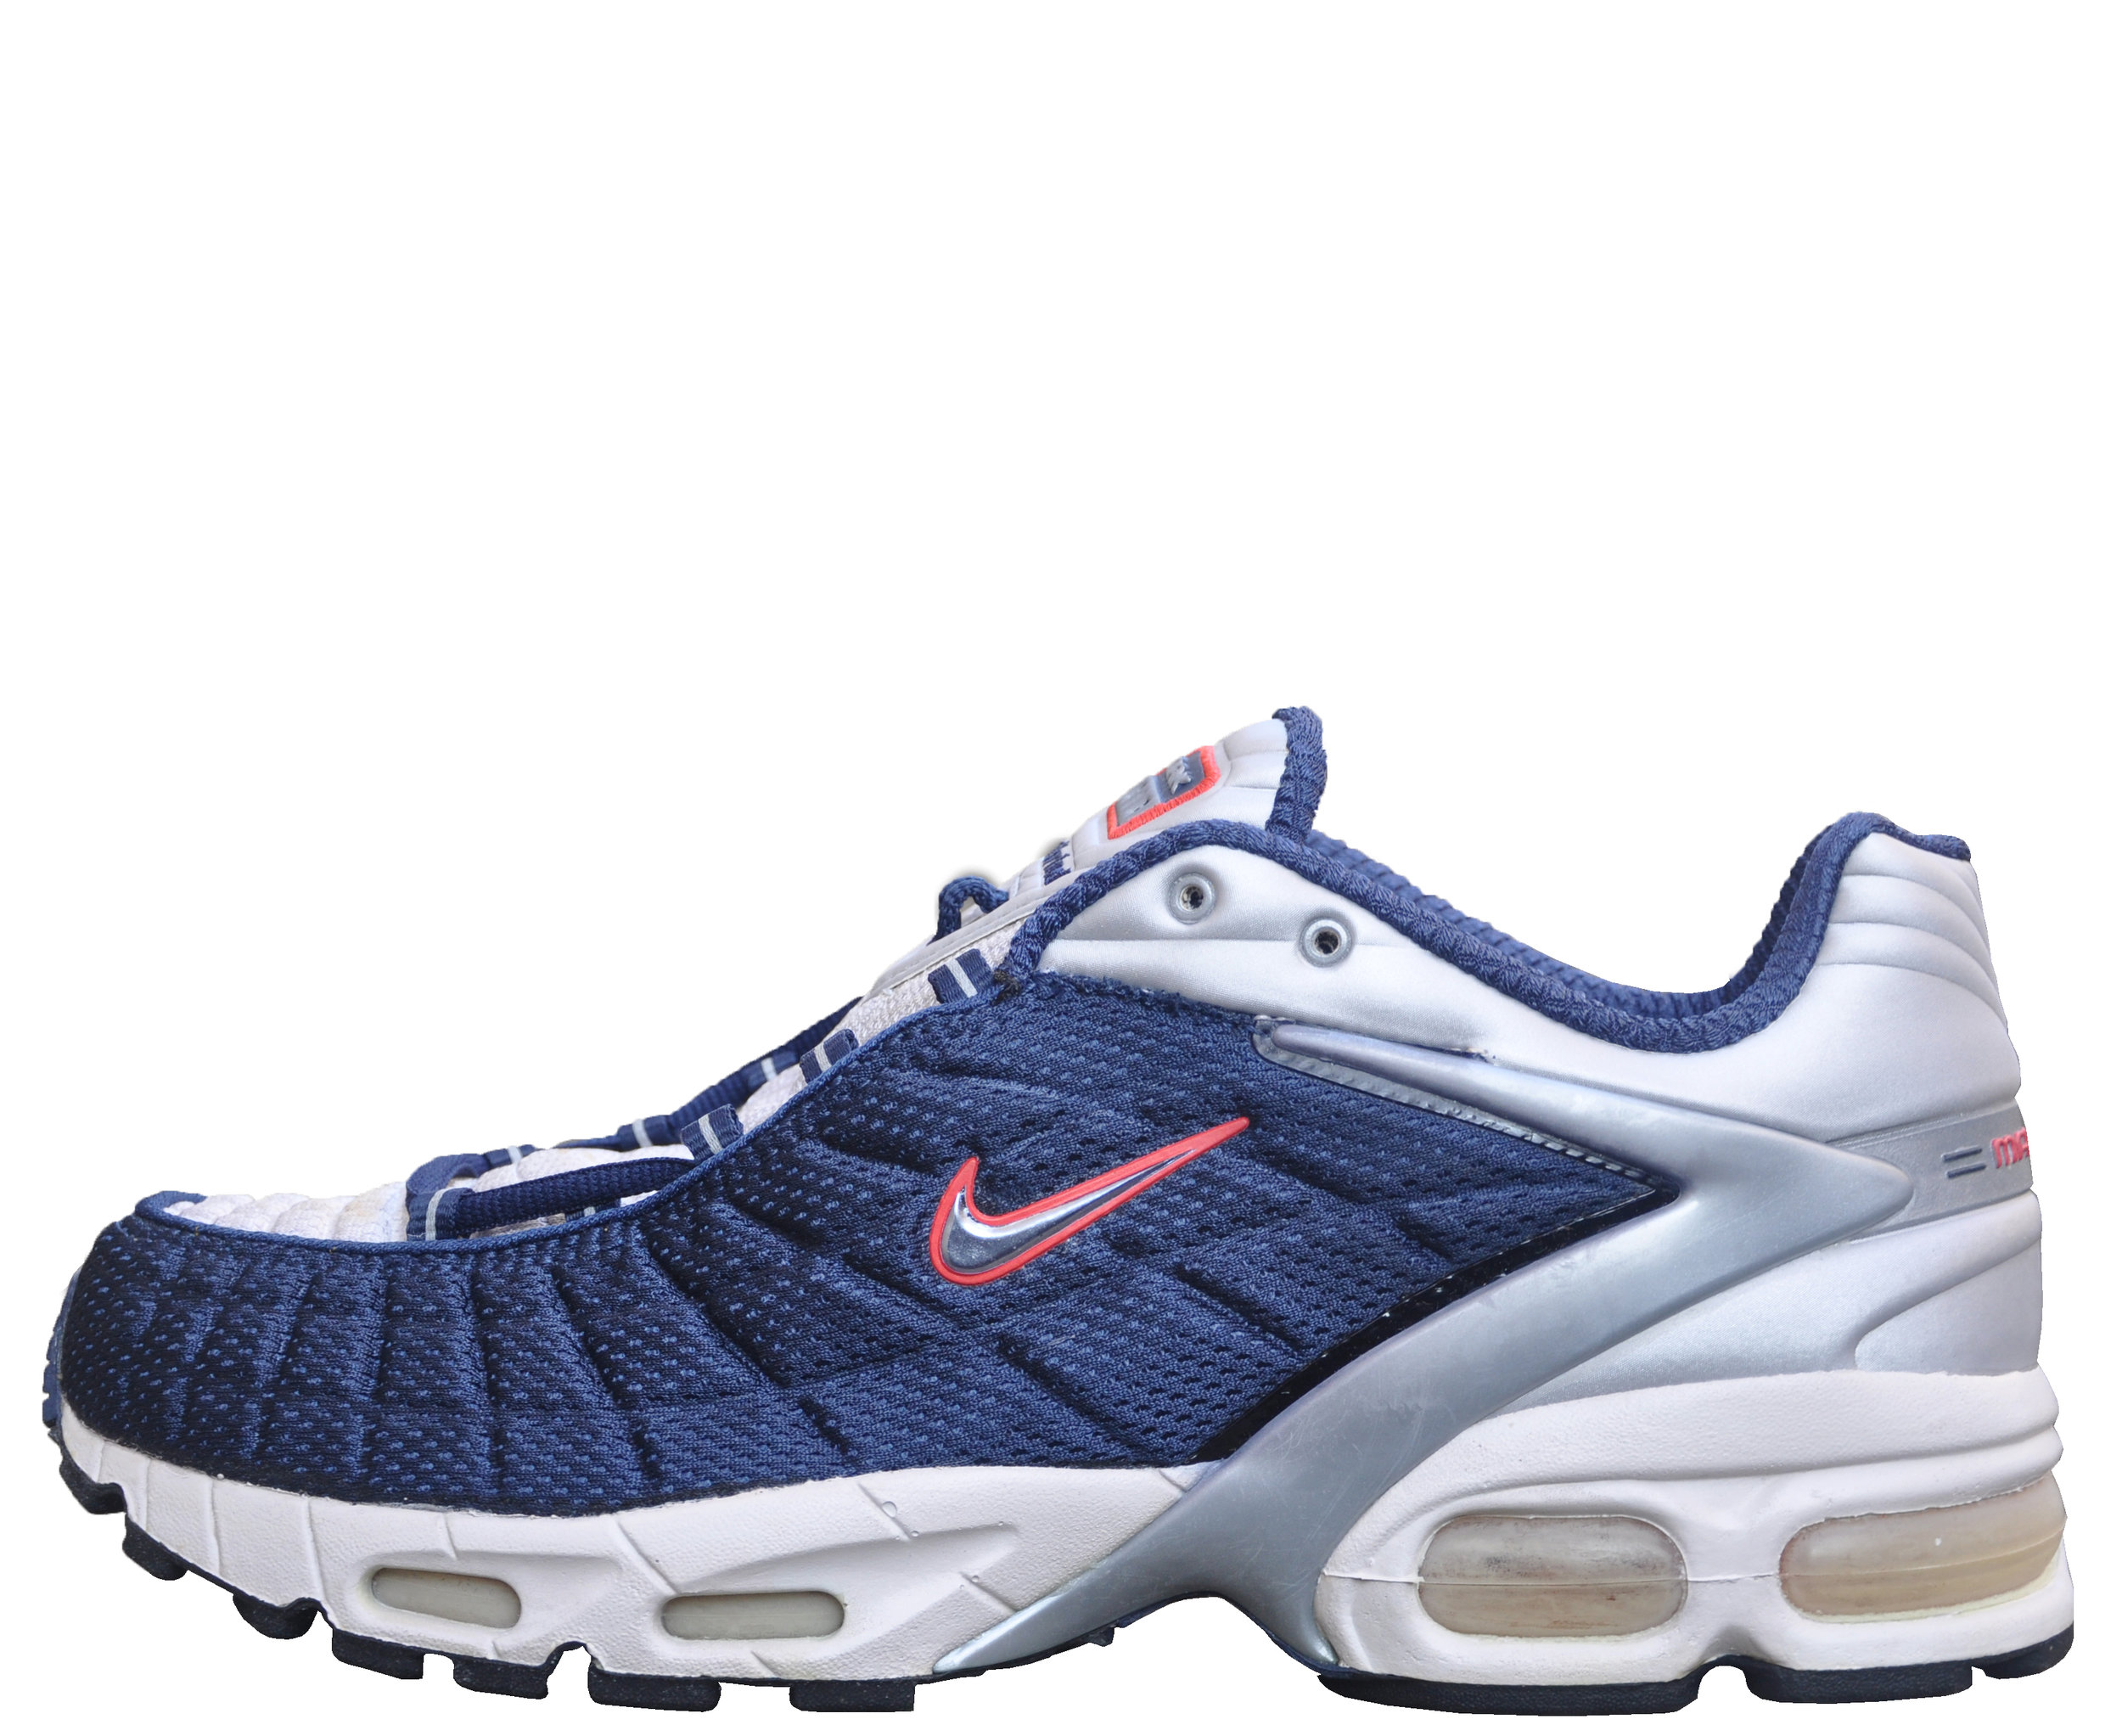 Nike Air Max Tailwind Navy / Silver / Max Orange (Size 11) DS — Roots